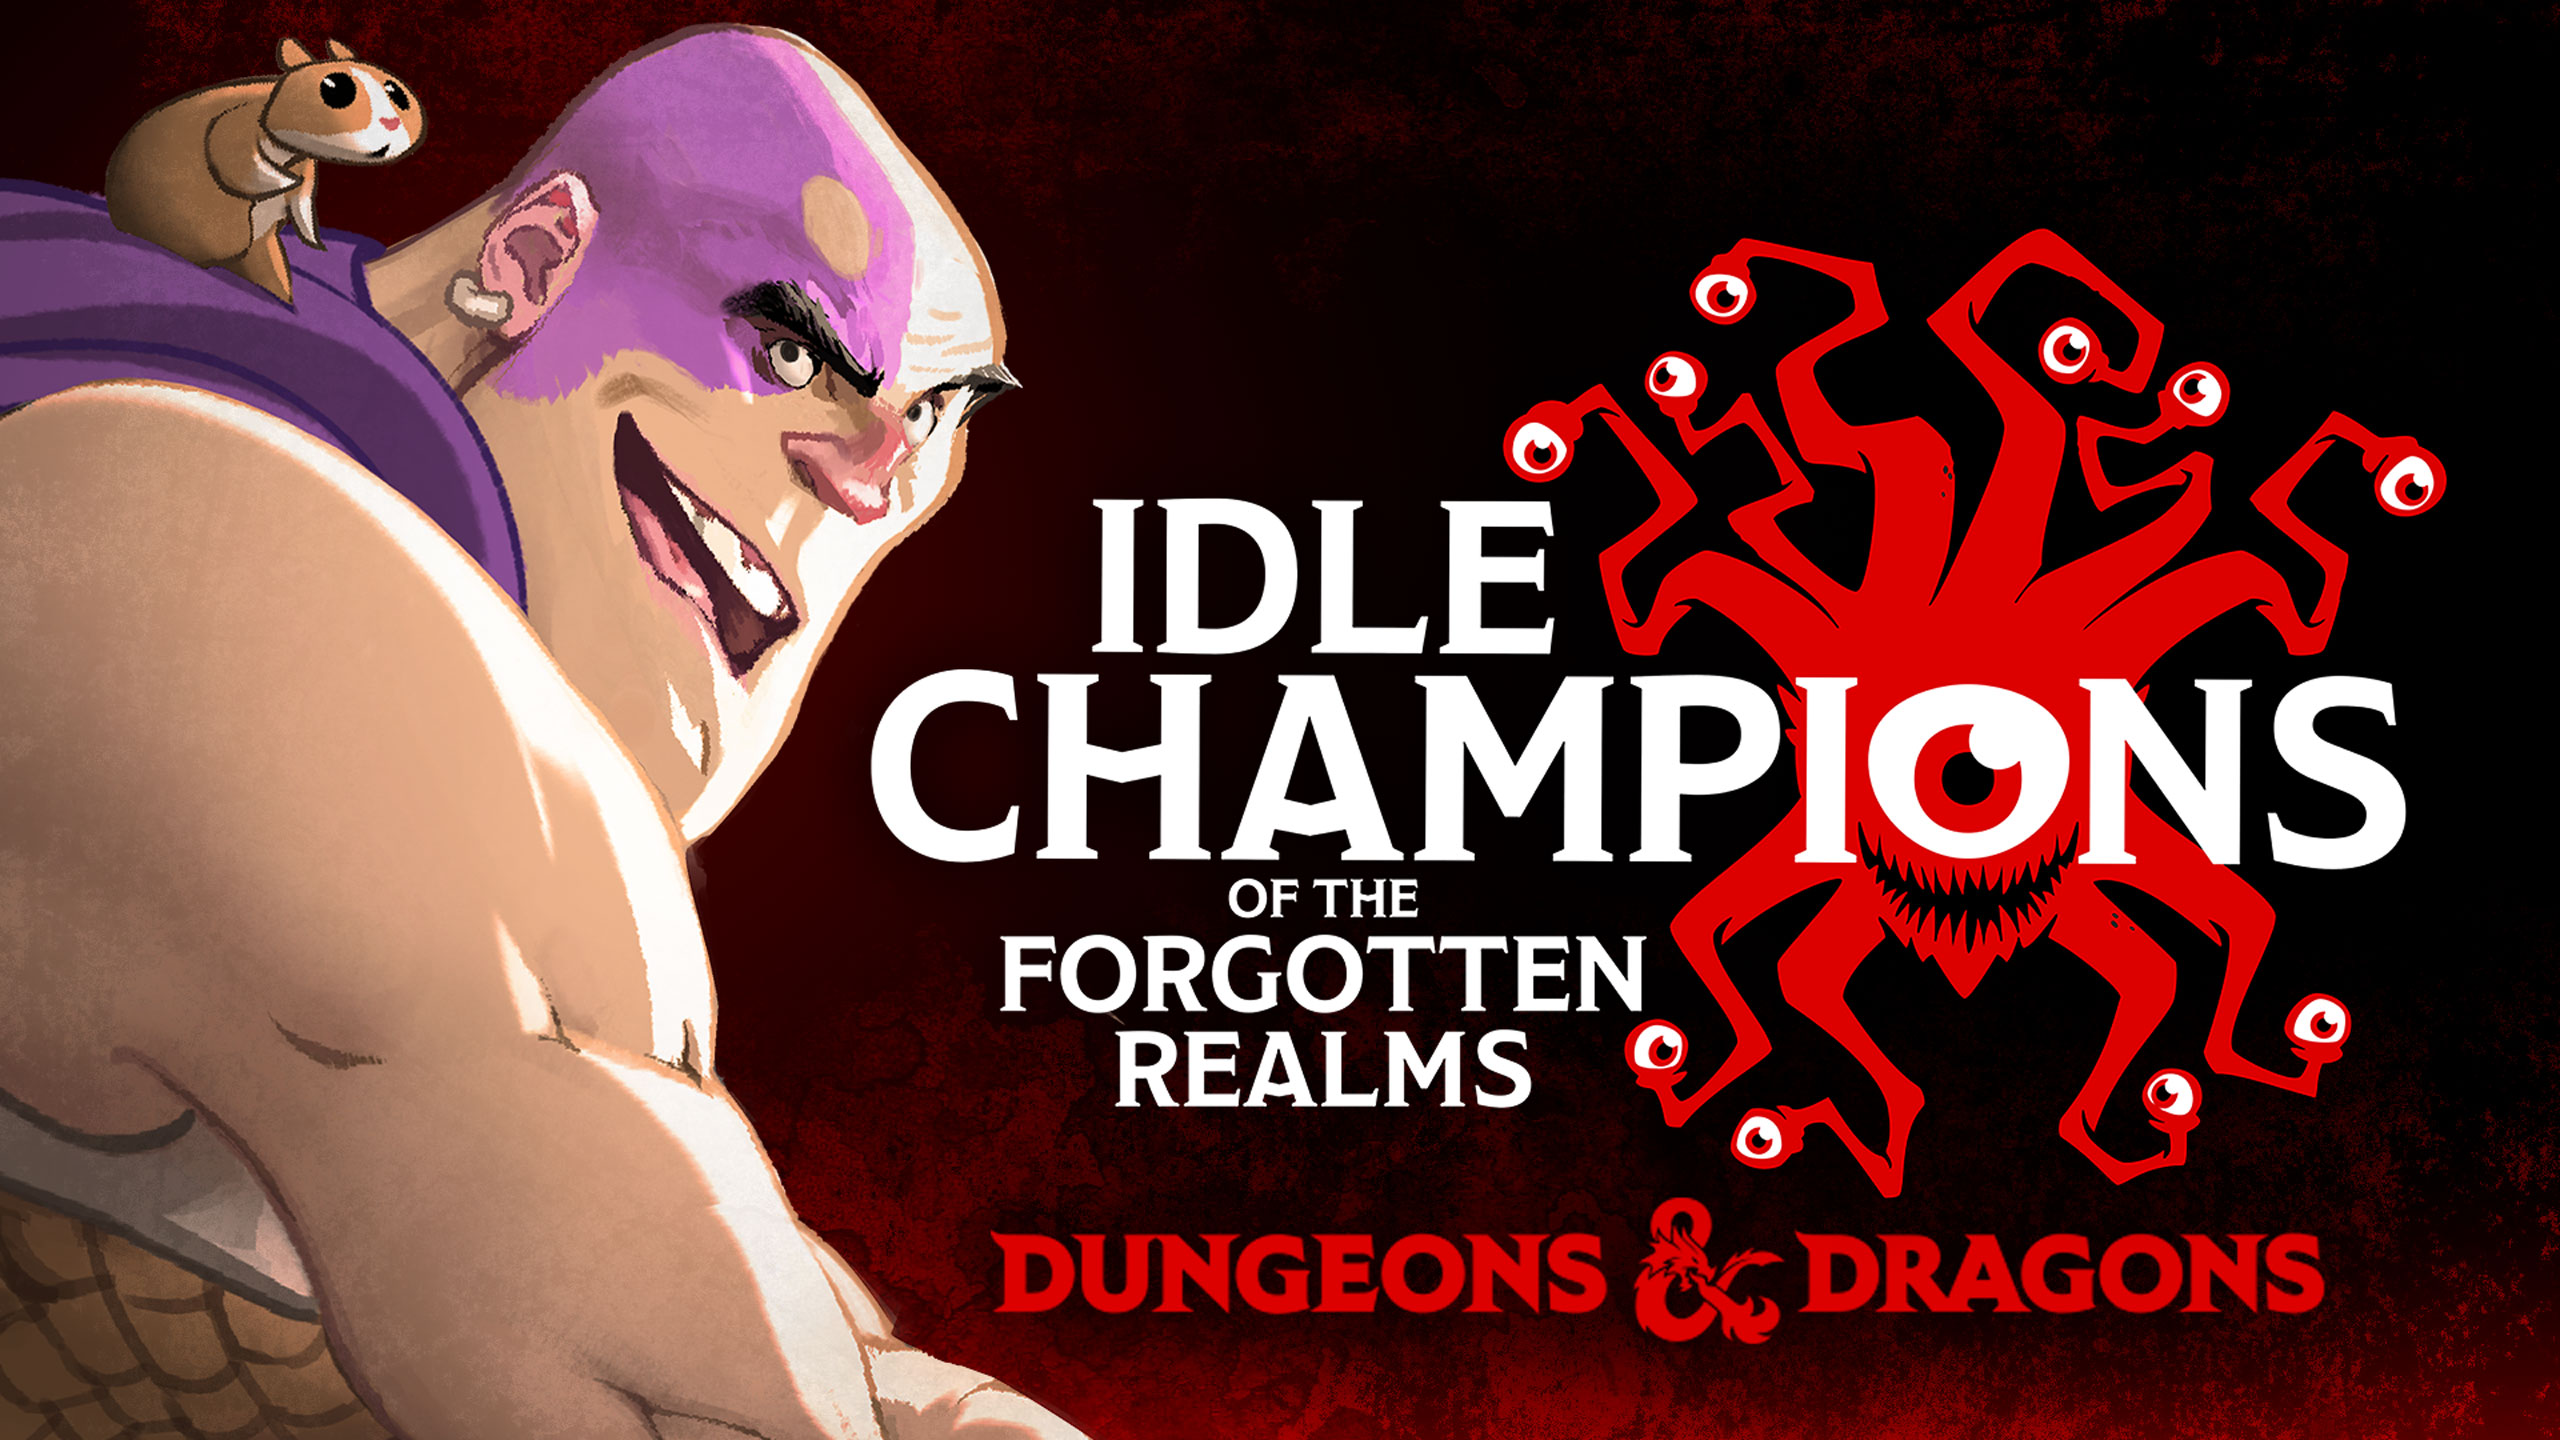 Idle Champions of the Forgotten Realms | Download and Play for Free - Epic Games Store